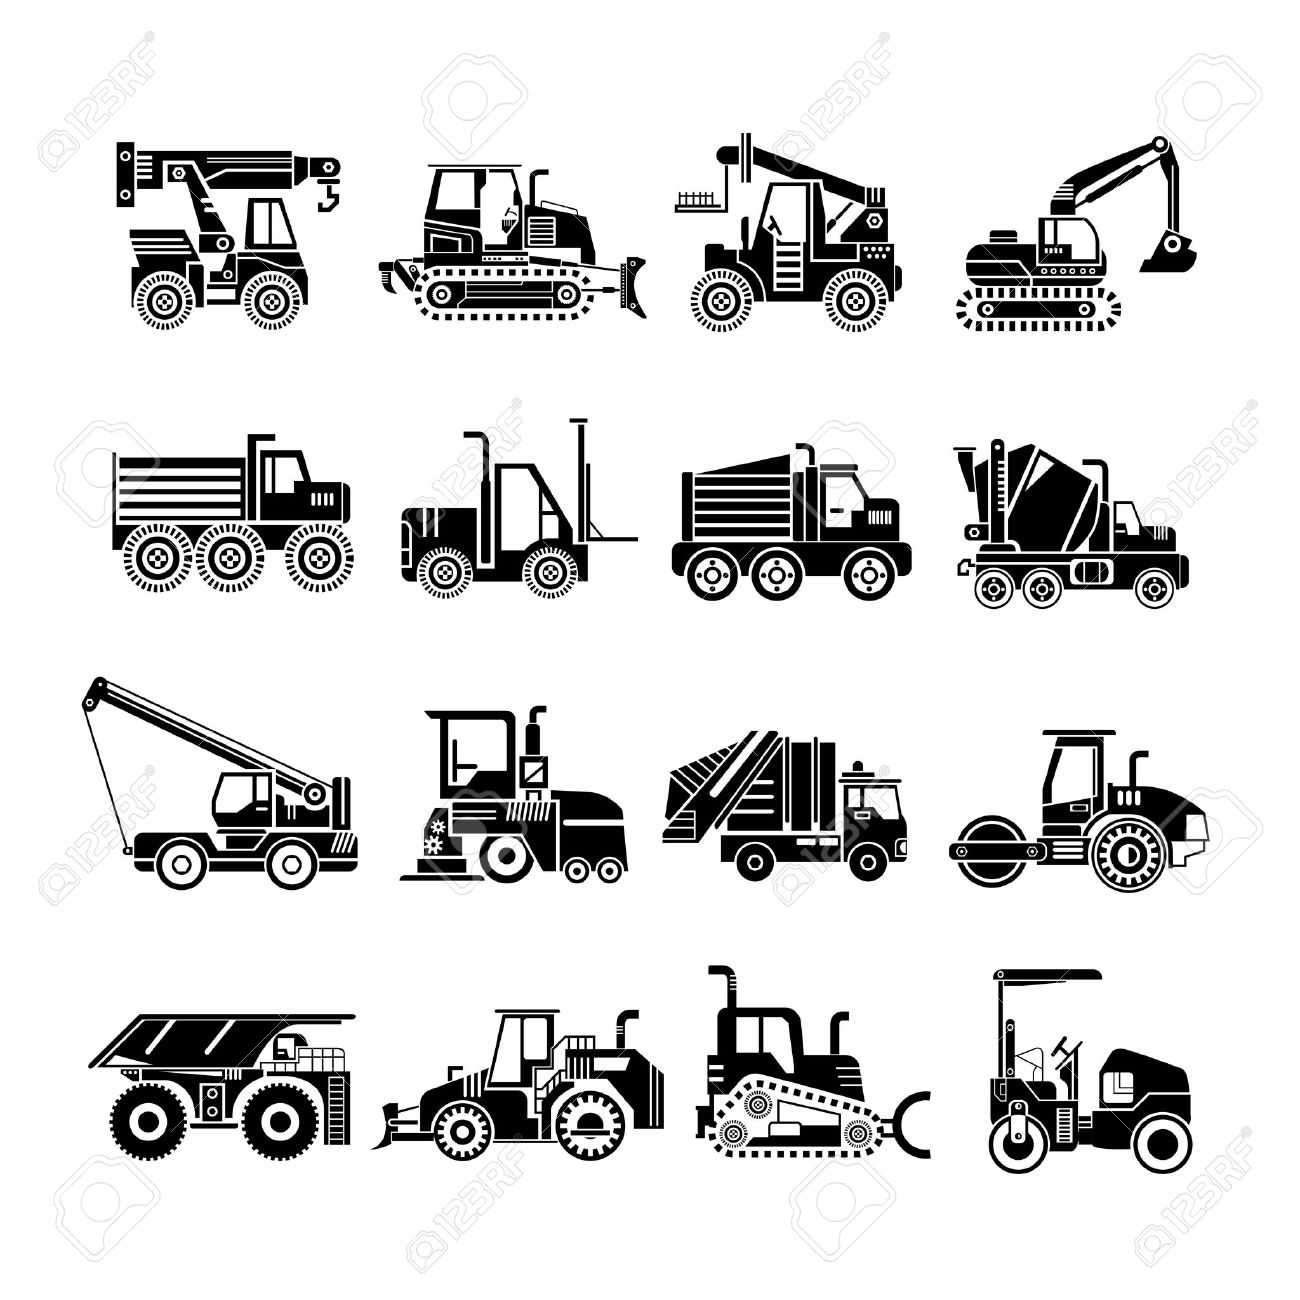 Work Vehicles Clipart